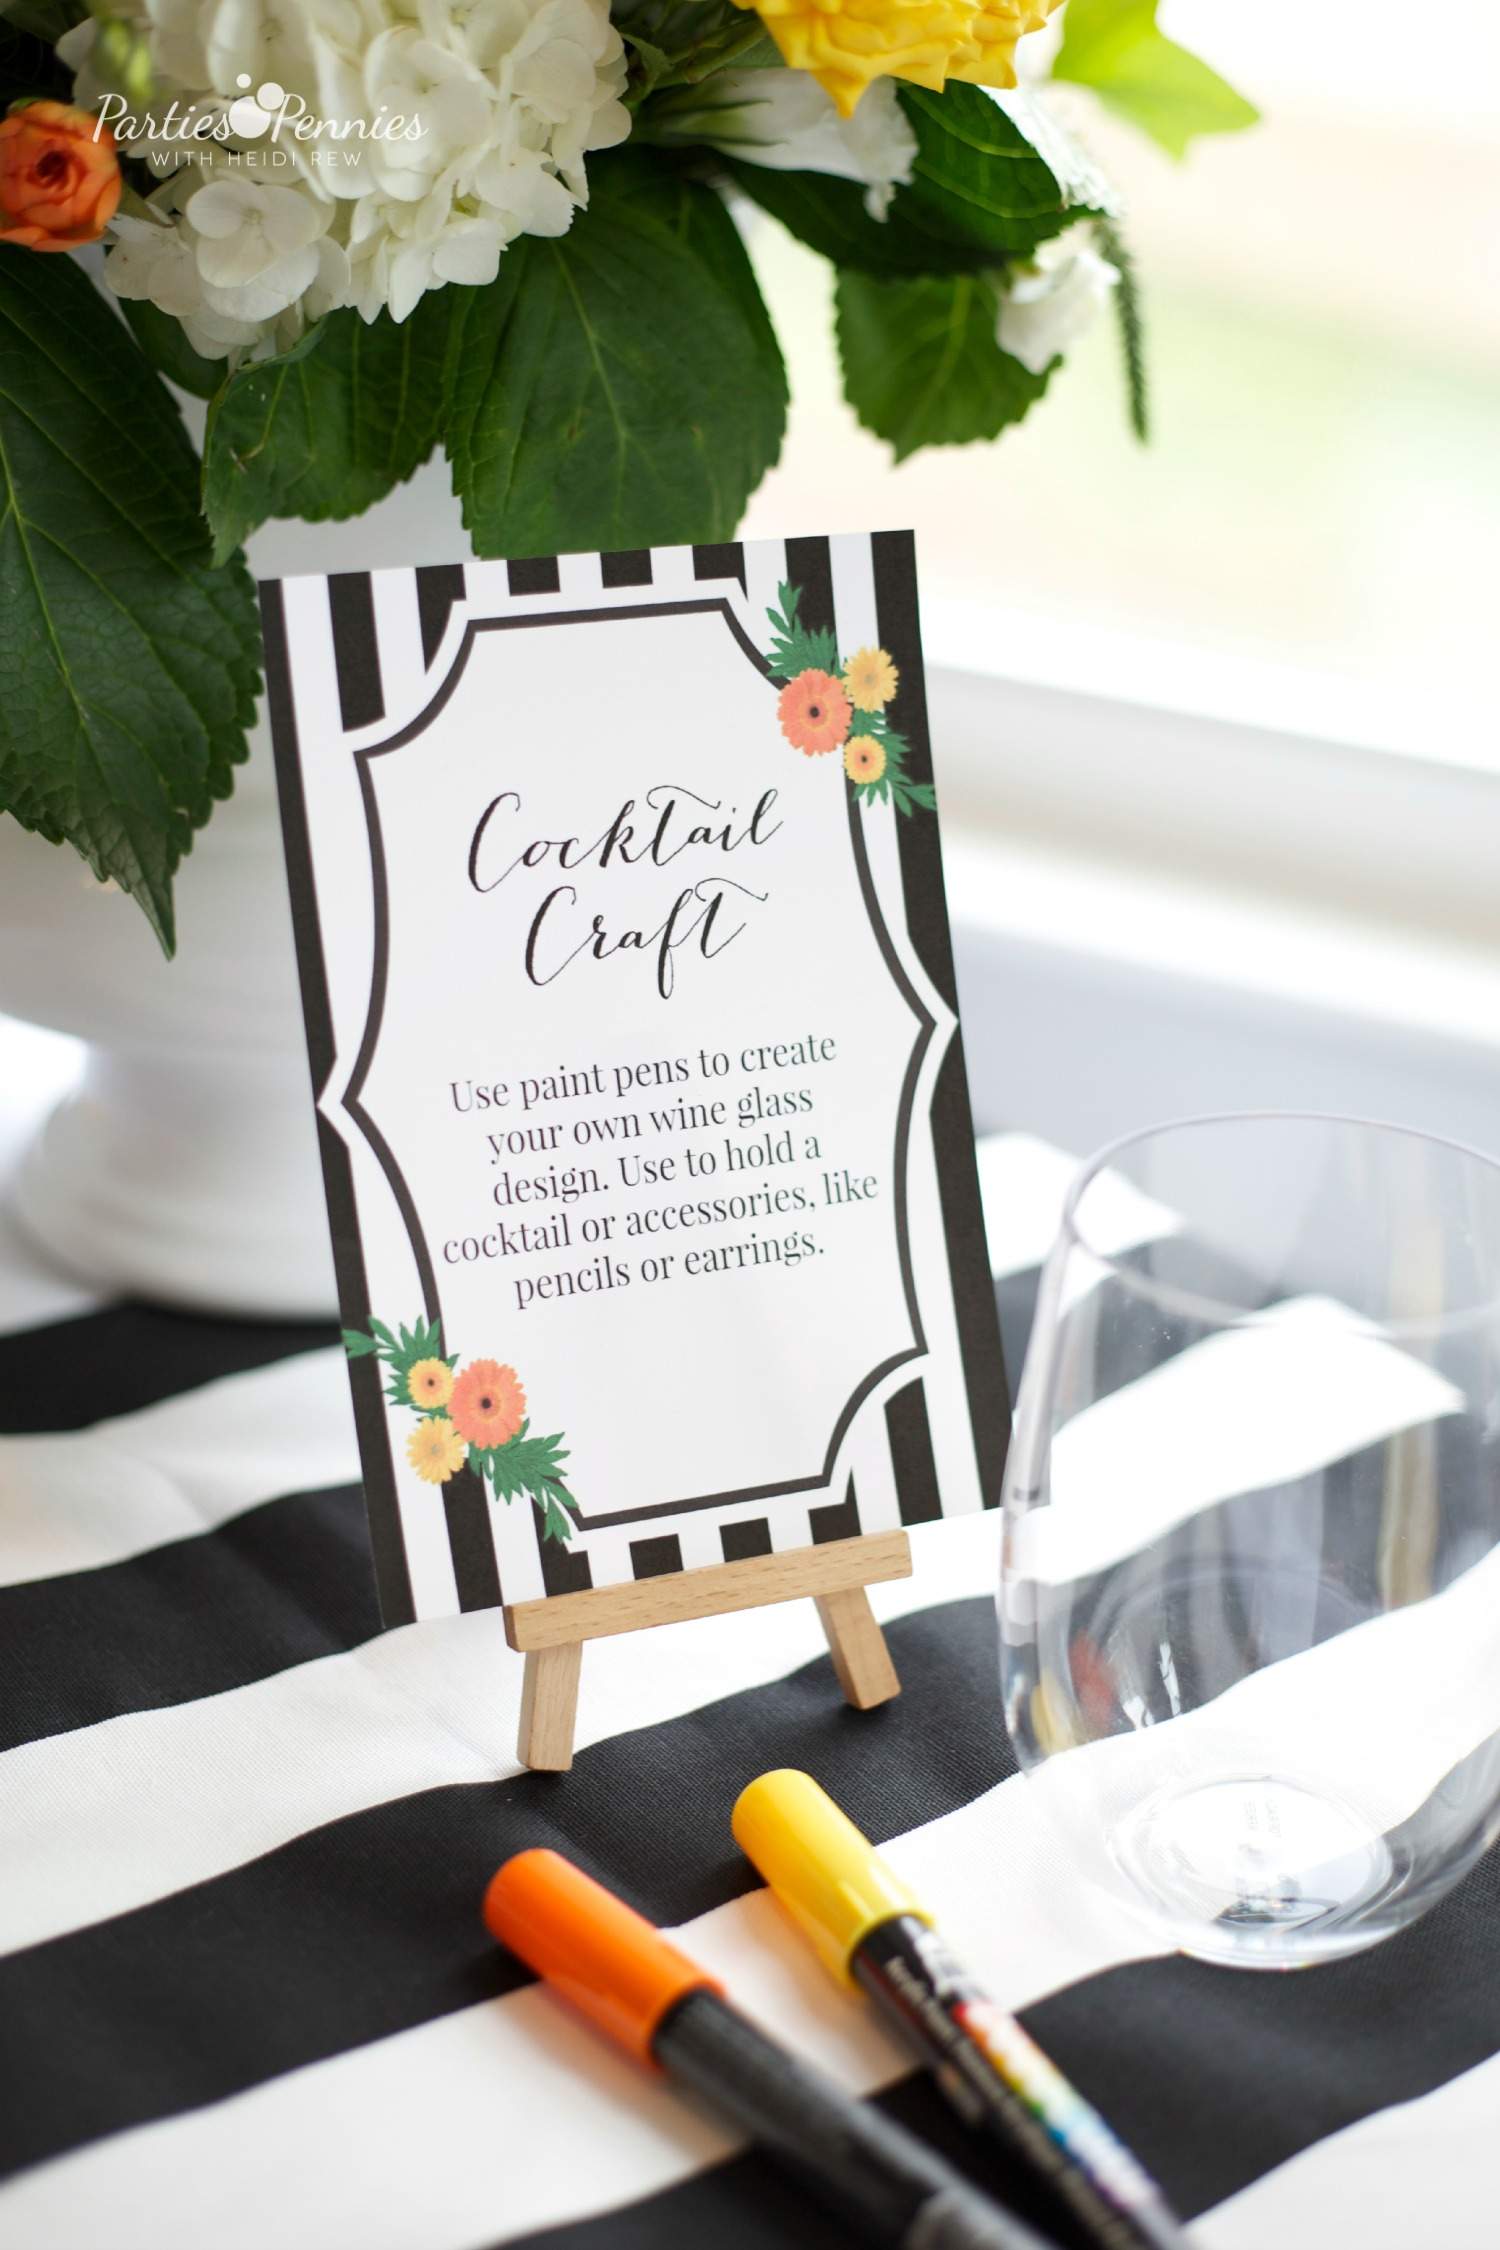 Design Your Own Mocktail Glass Baby Shower Activity - Project Nursery